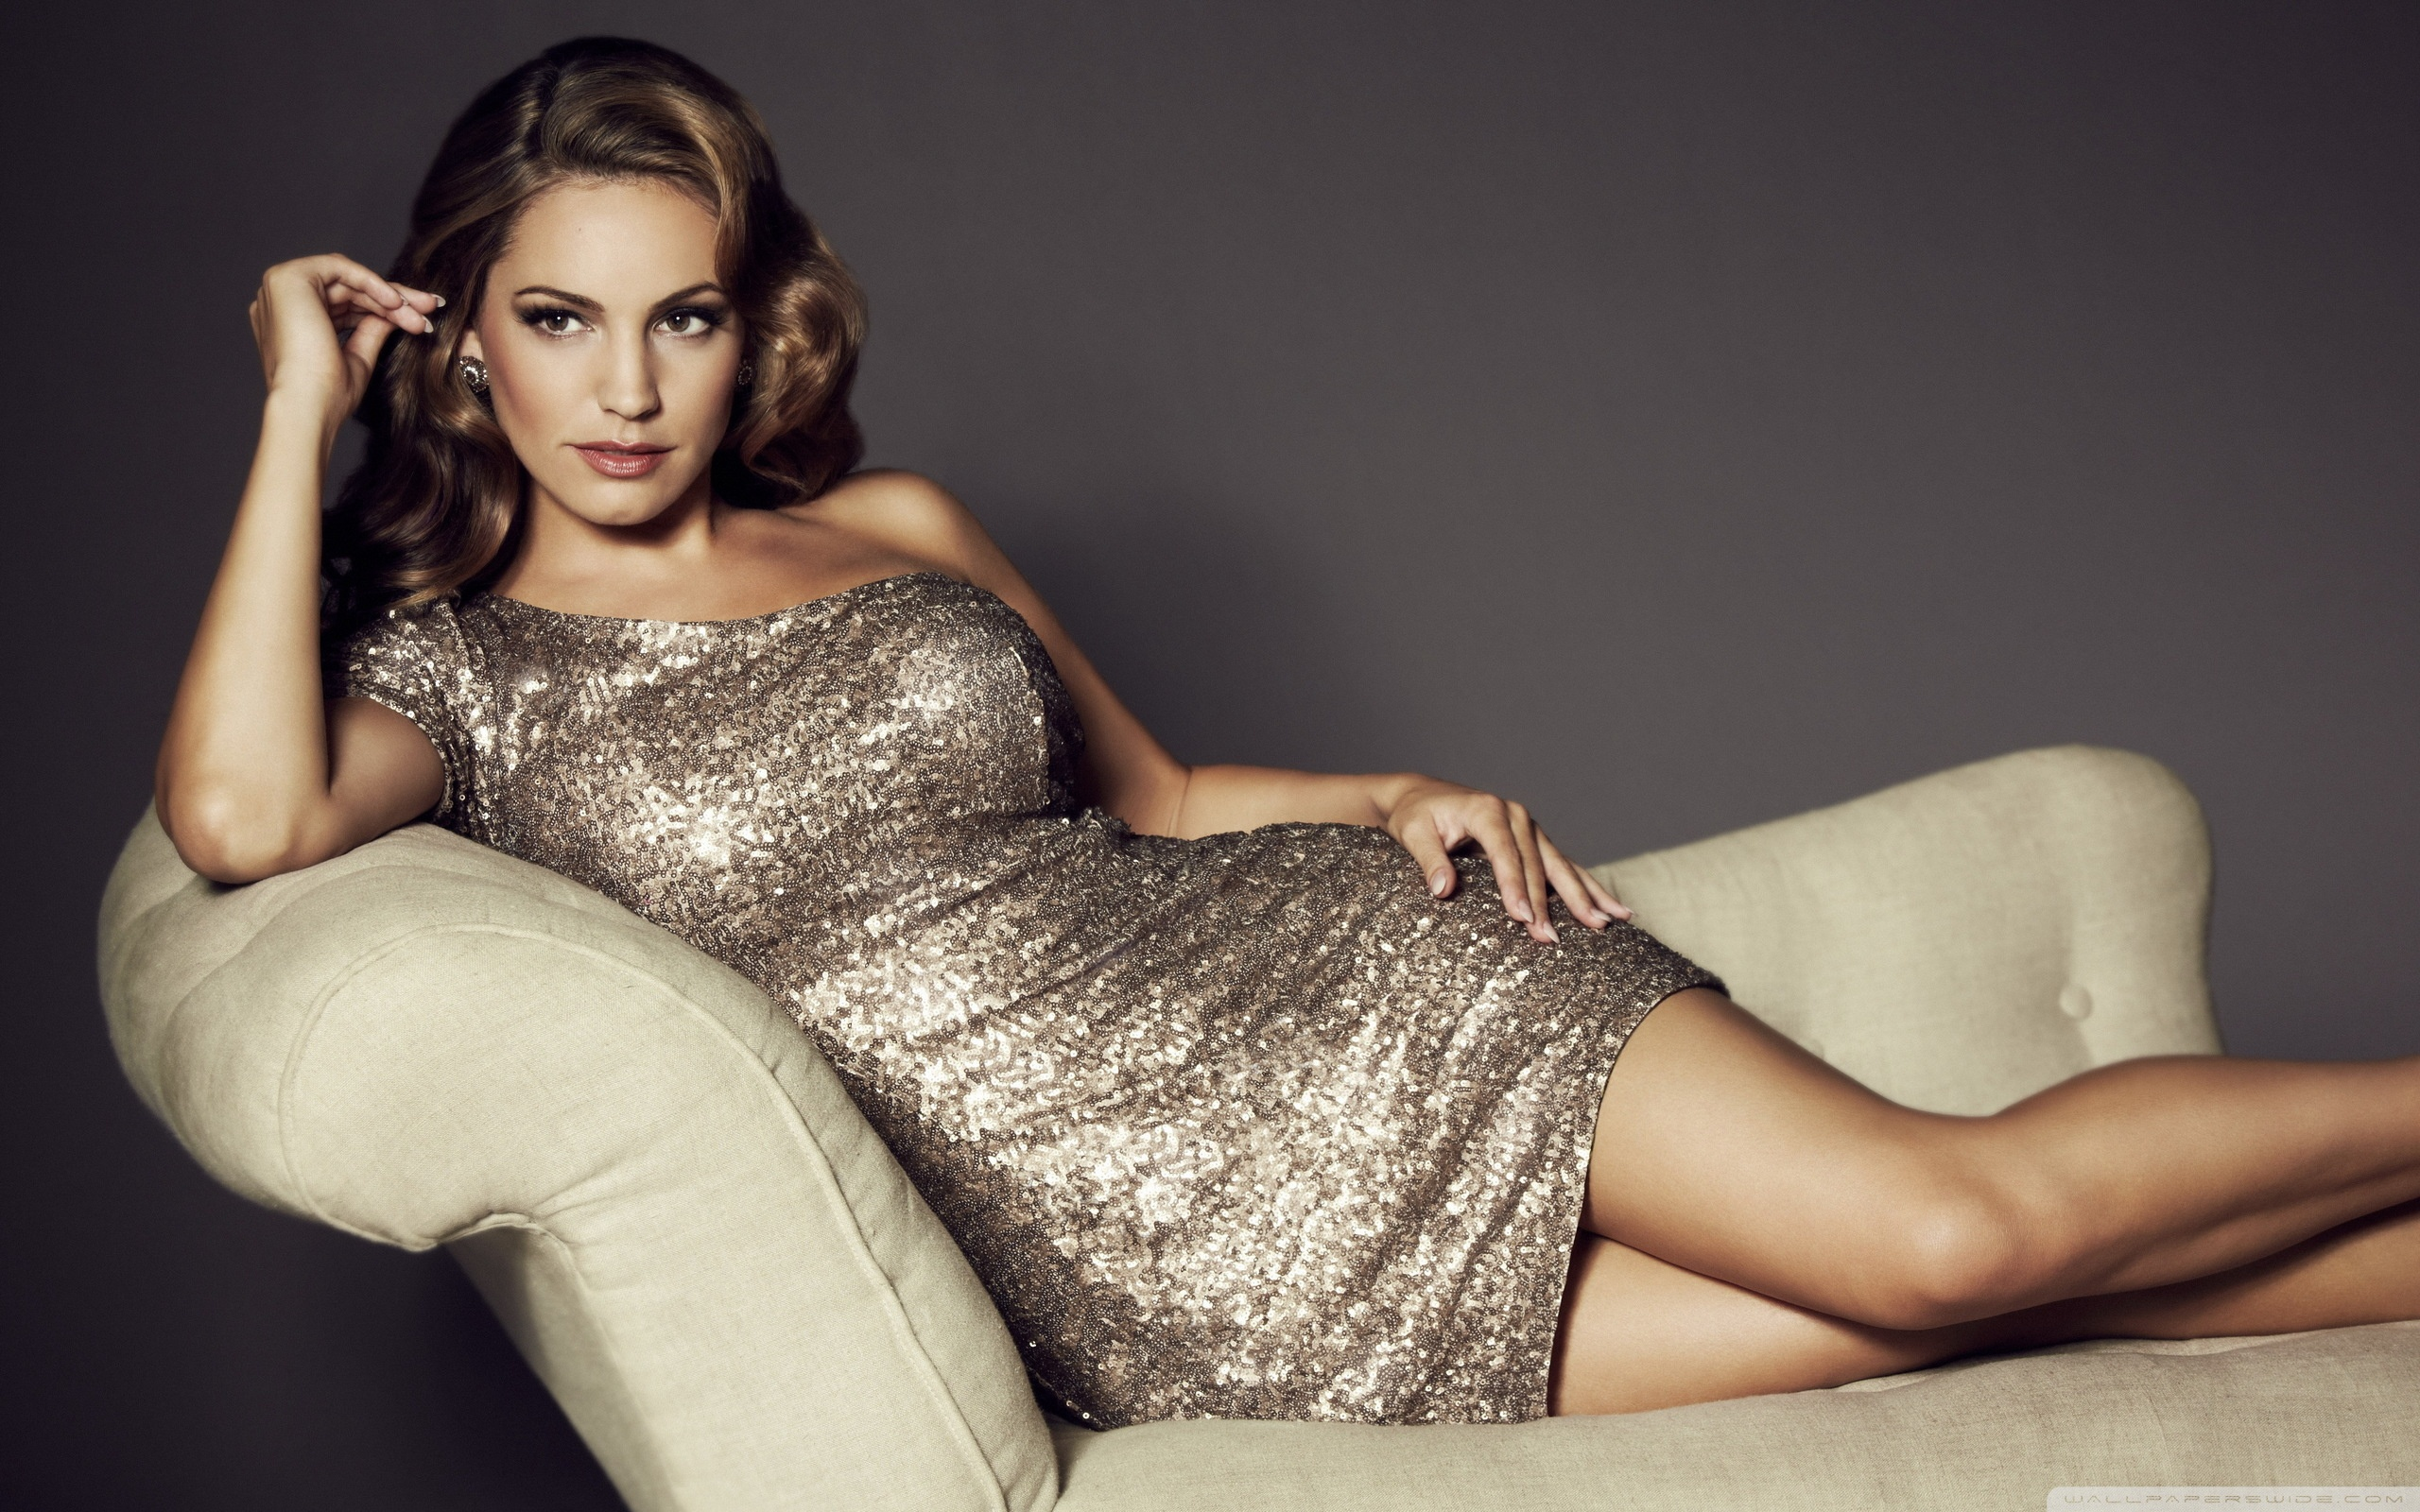 2560x1600 - Kelly Brook Wallpapers 13